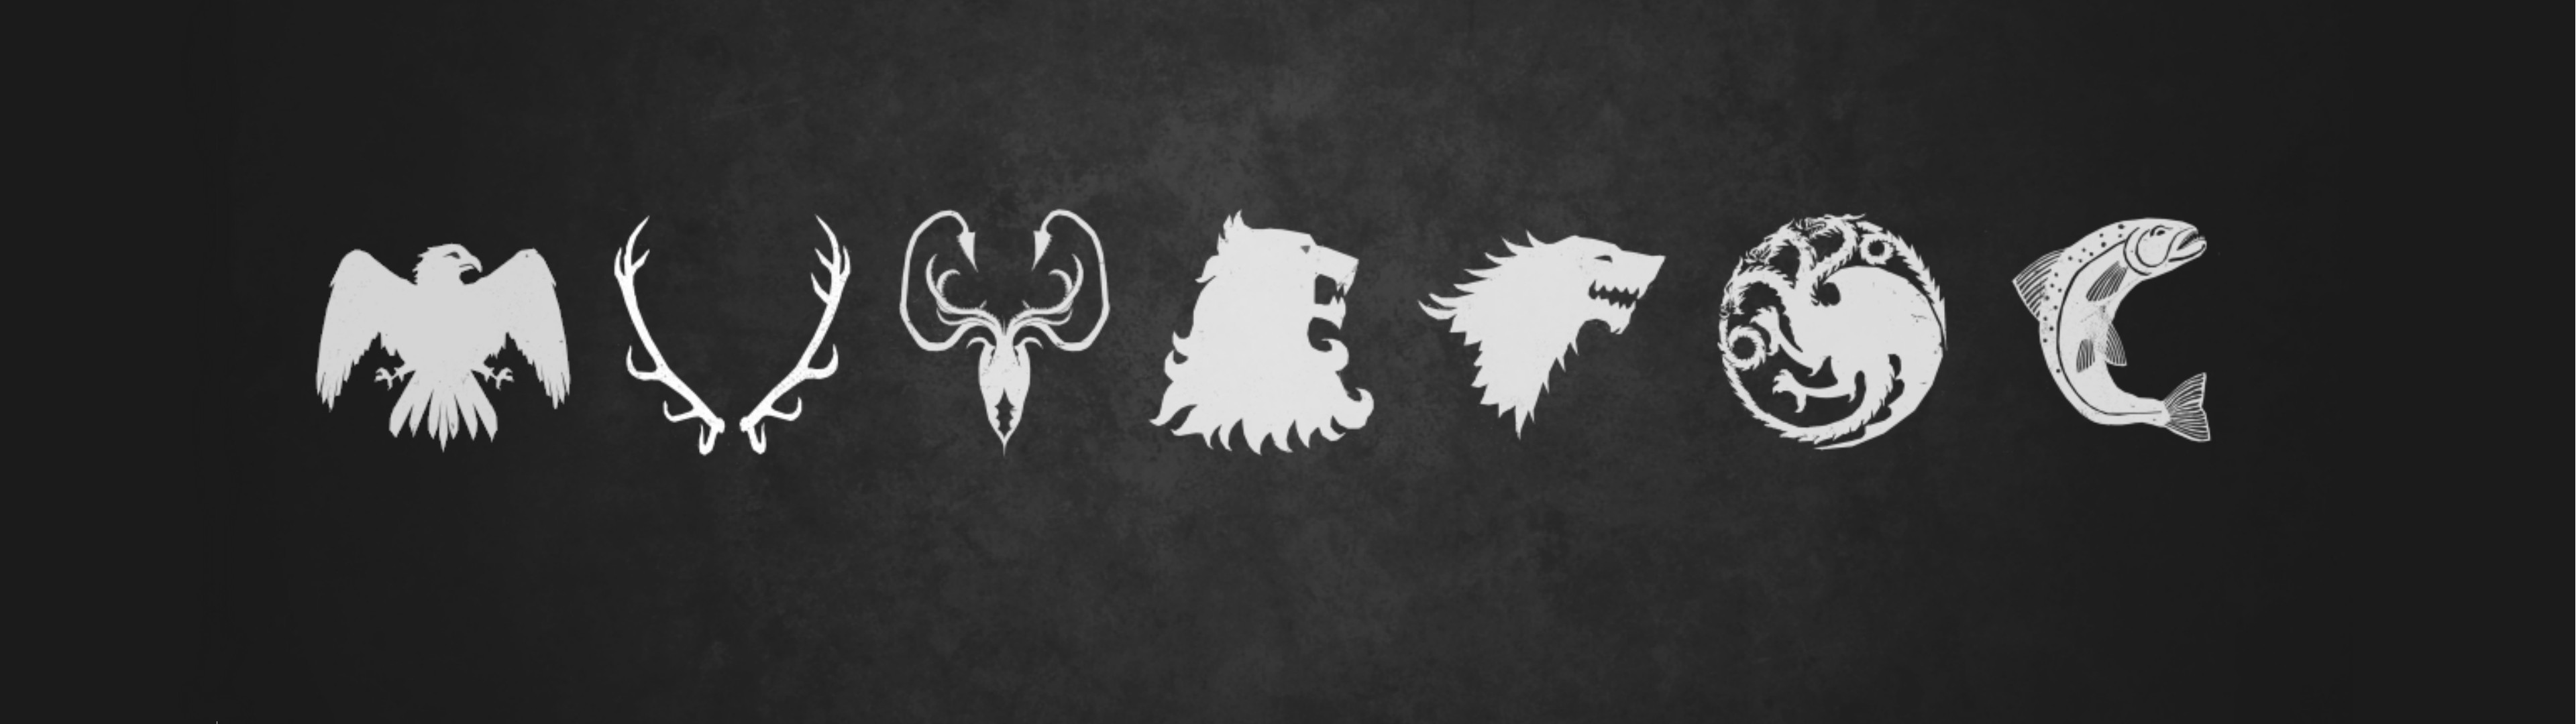 3840x1080 [] Game of ...